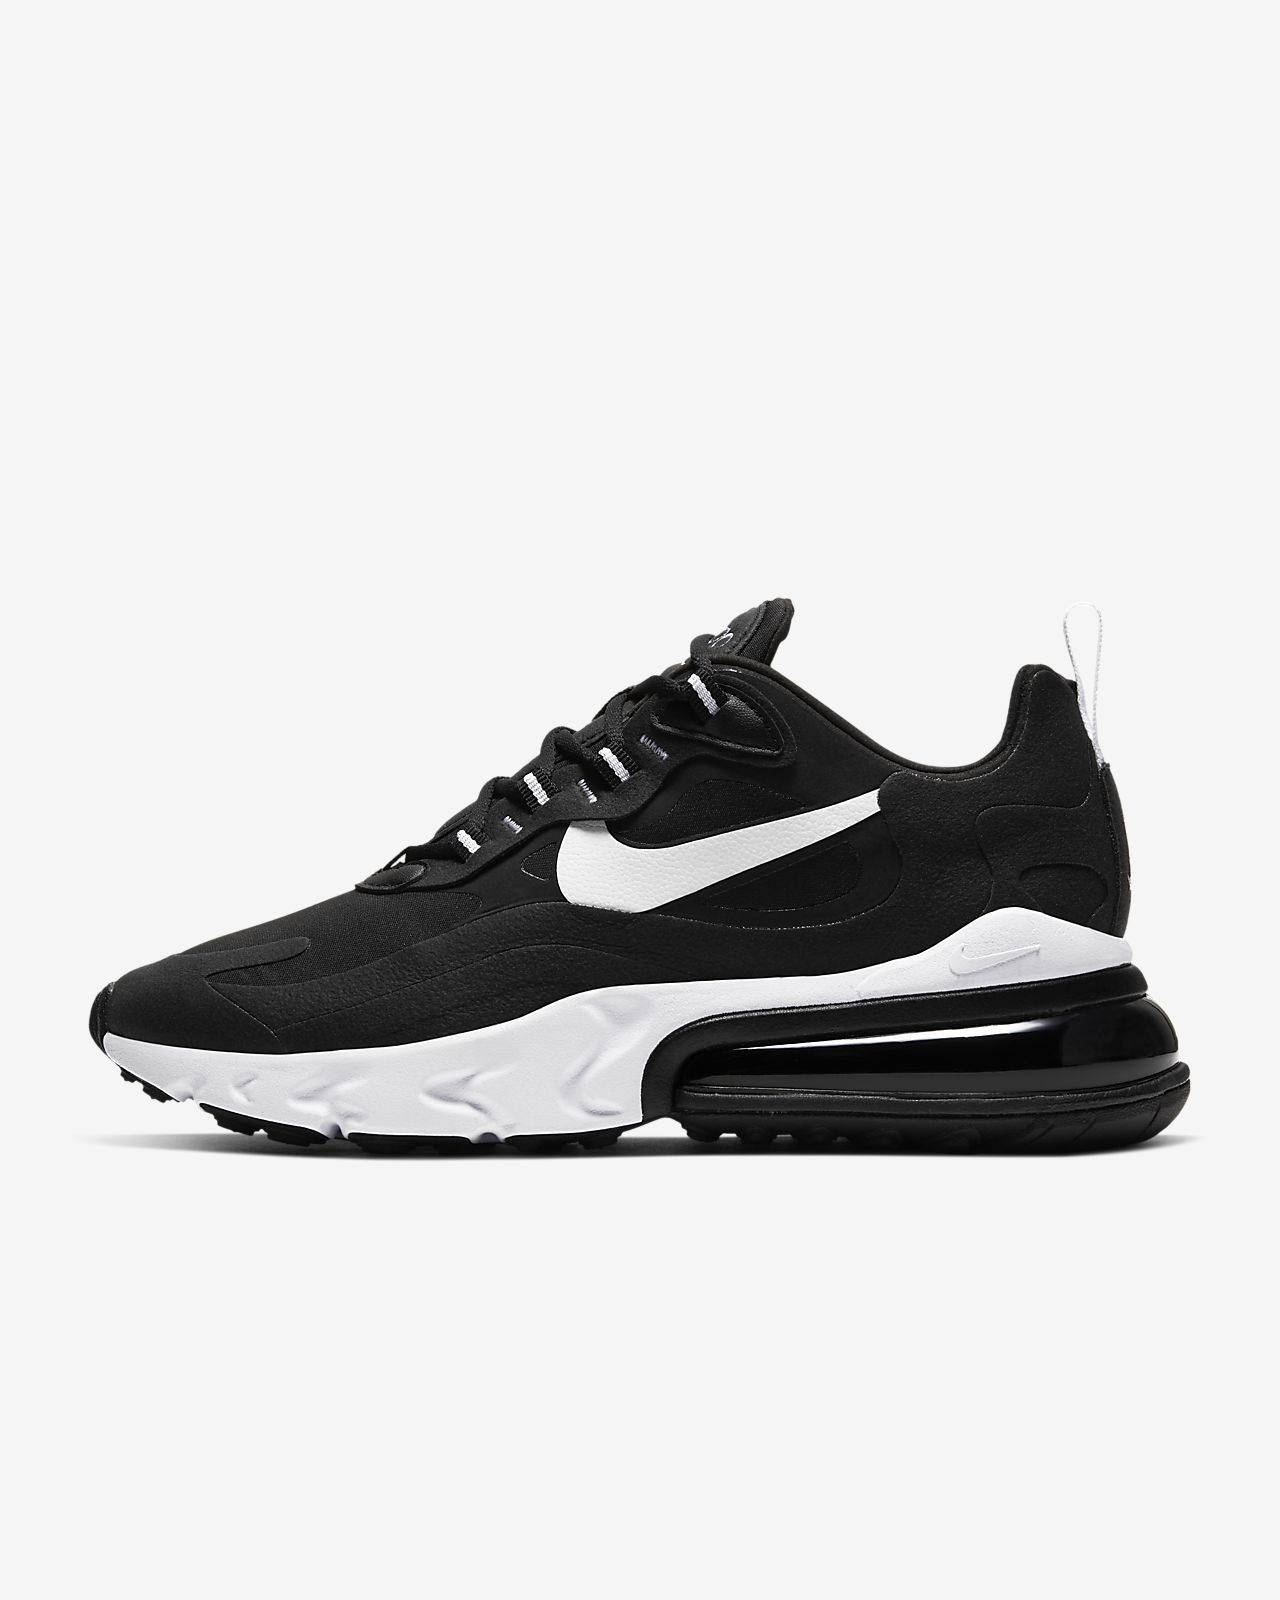 air max 270 react grey and black